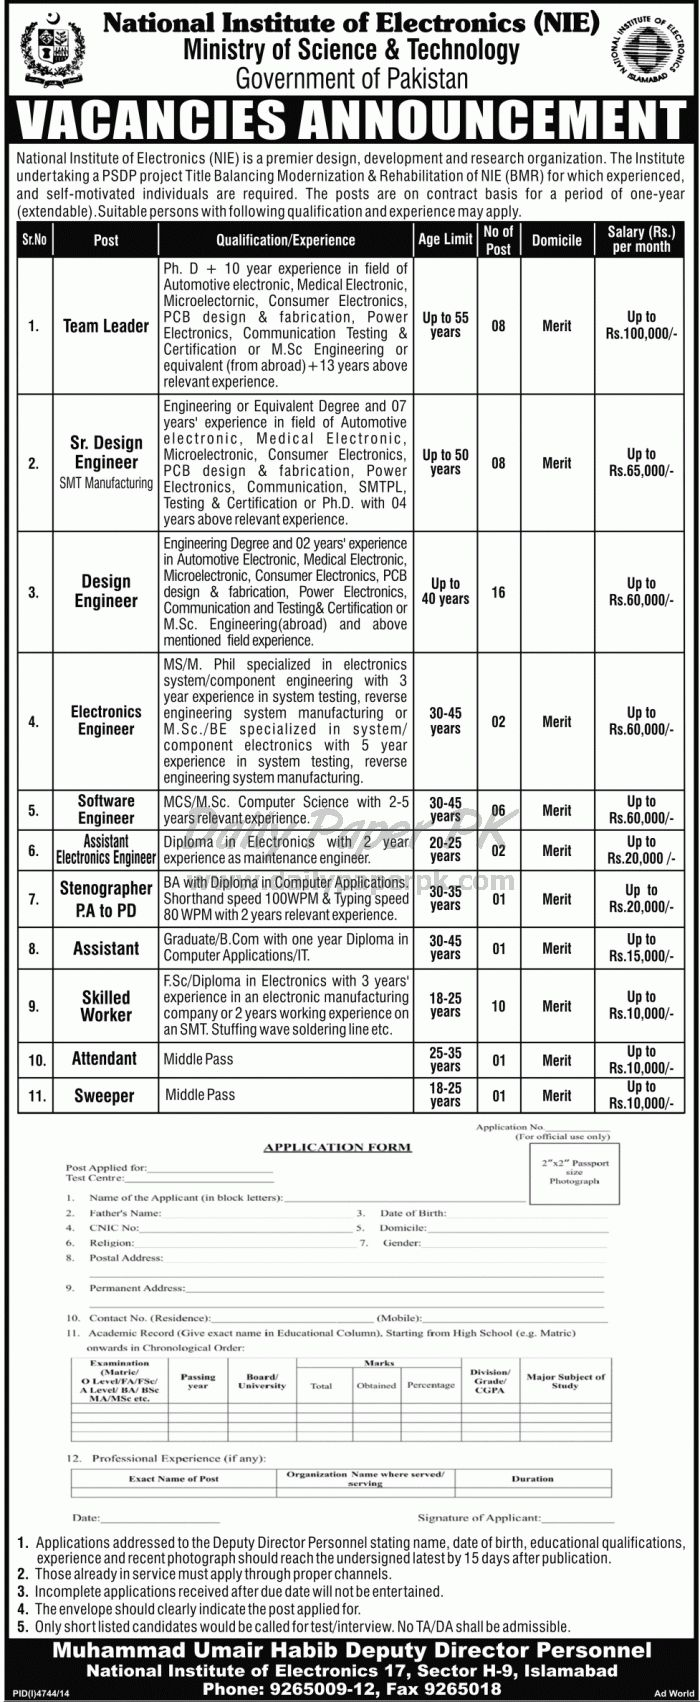 Pakistan Govt Jobs in National Institute of Electronics NIE, Ministry of Science & Technology Islamabad For #jobs detail and how to apply: #paperpk http://www.dailypaperpk.com/jobs/232105/pakistan-govt-jobs-national-institute-electronics-nie-ministry-science-technology-islamabad